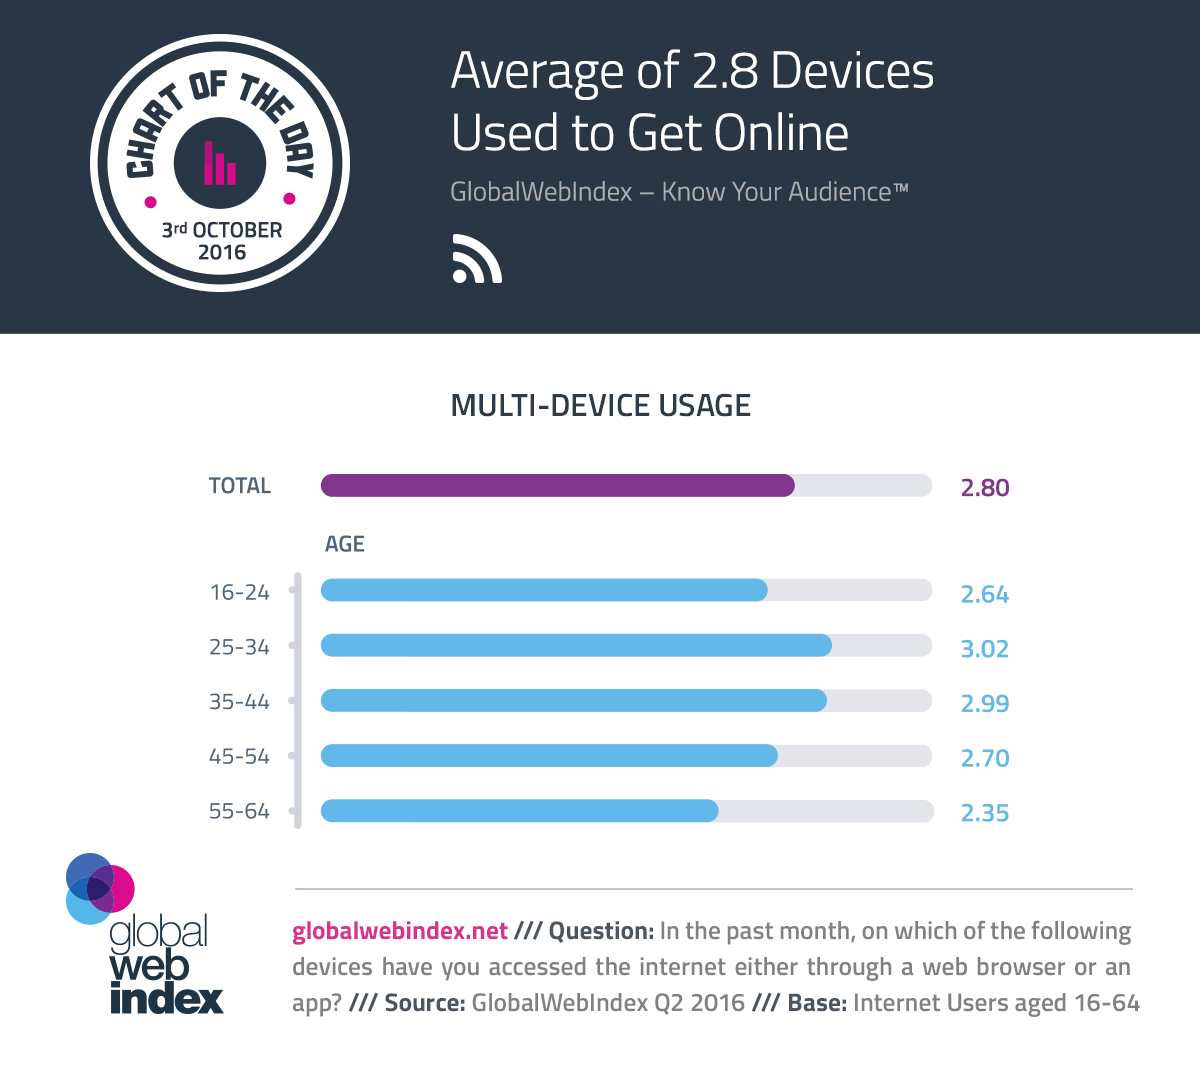 Average of 2.8 Devices Used to Get Online